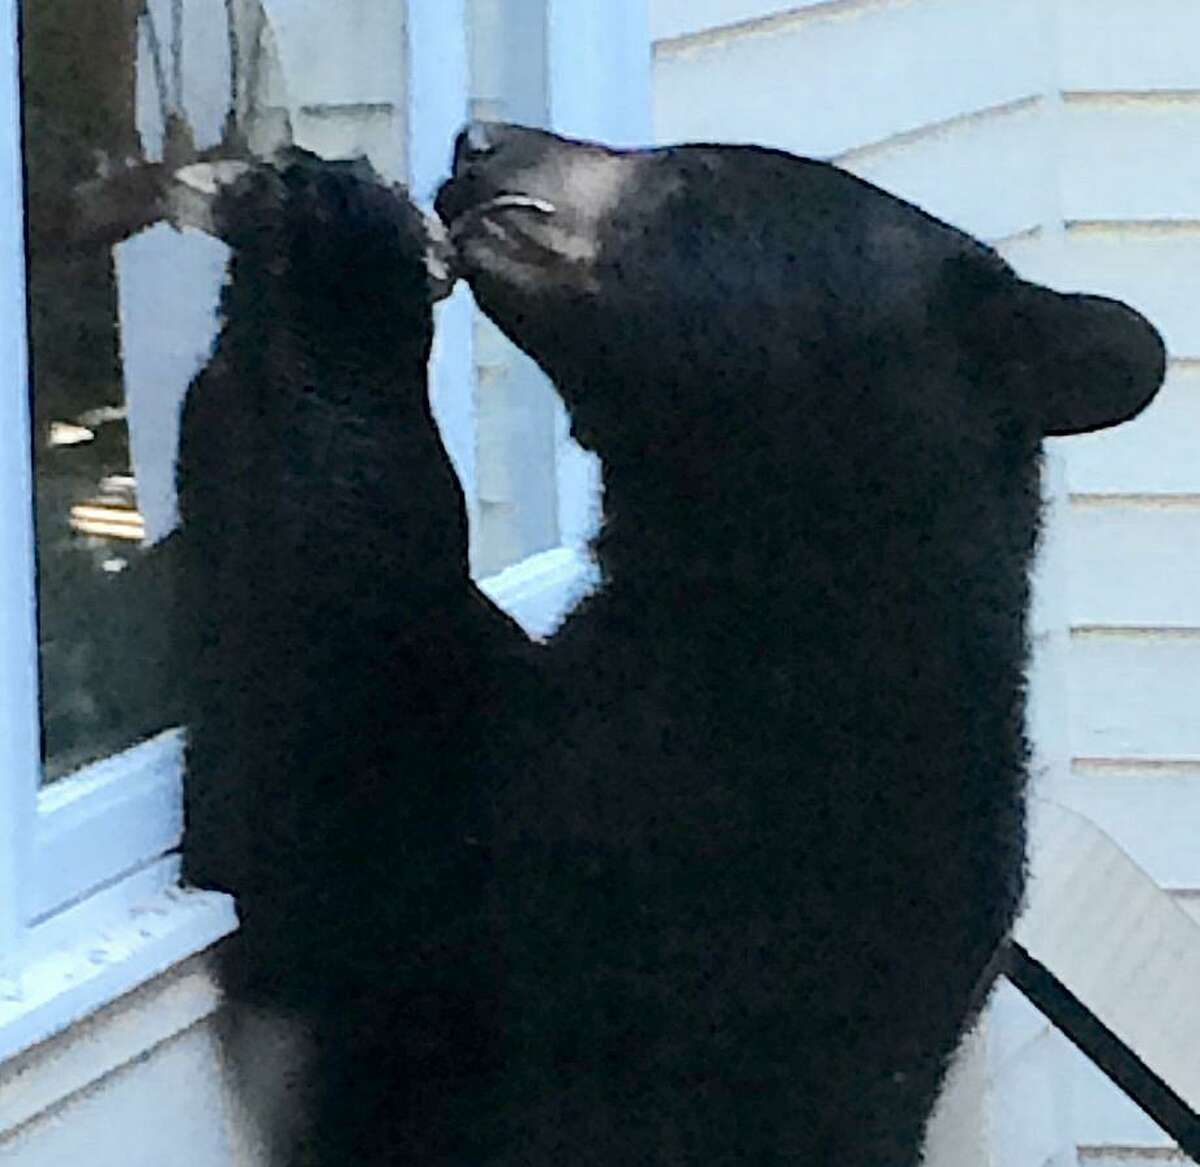 Black bears were spotted prowling through local neighborhoods several times last summer, none more dramatically than when Barbara Ross-Innamorati snapped this photo of a bear that visited her Charcoal Hill Commons home's deck. A bear was sighted in Westport on Wednesday, May 21, 2019.